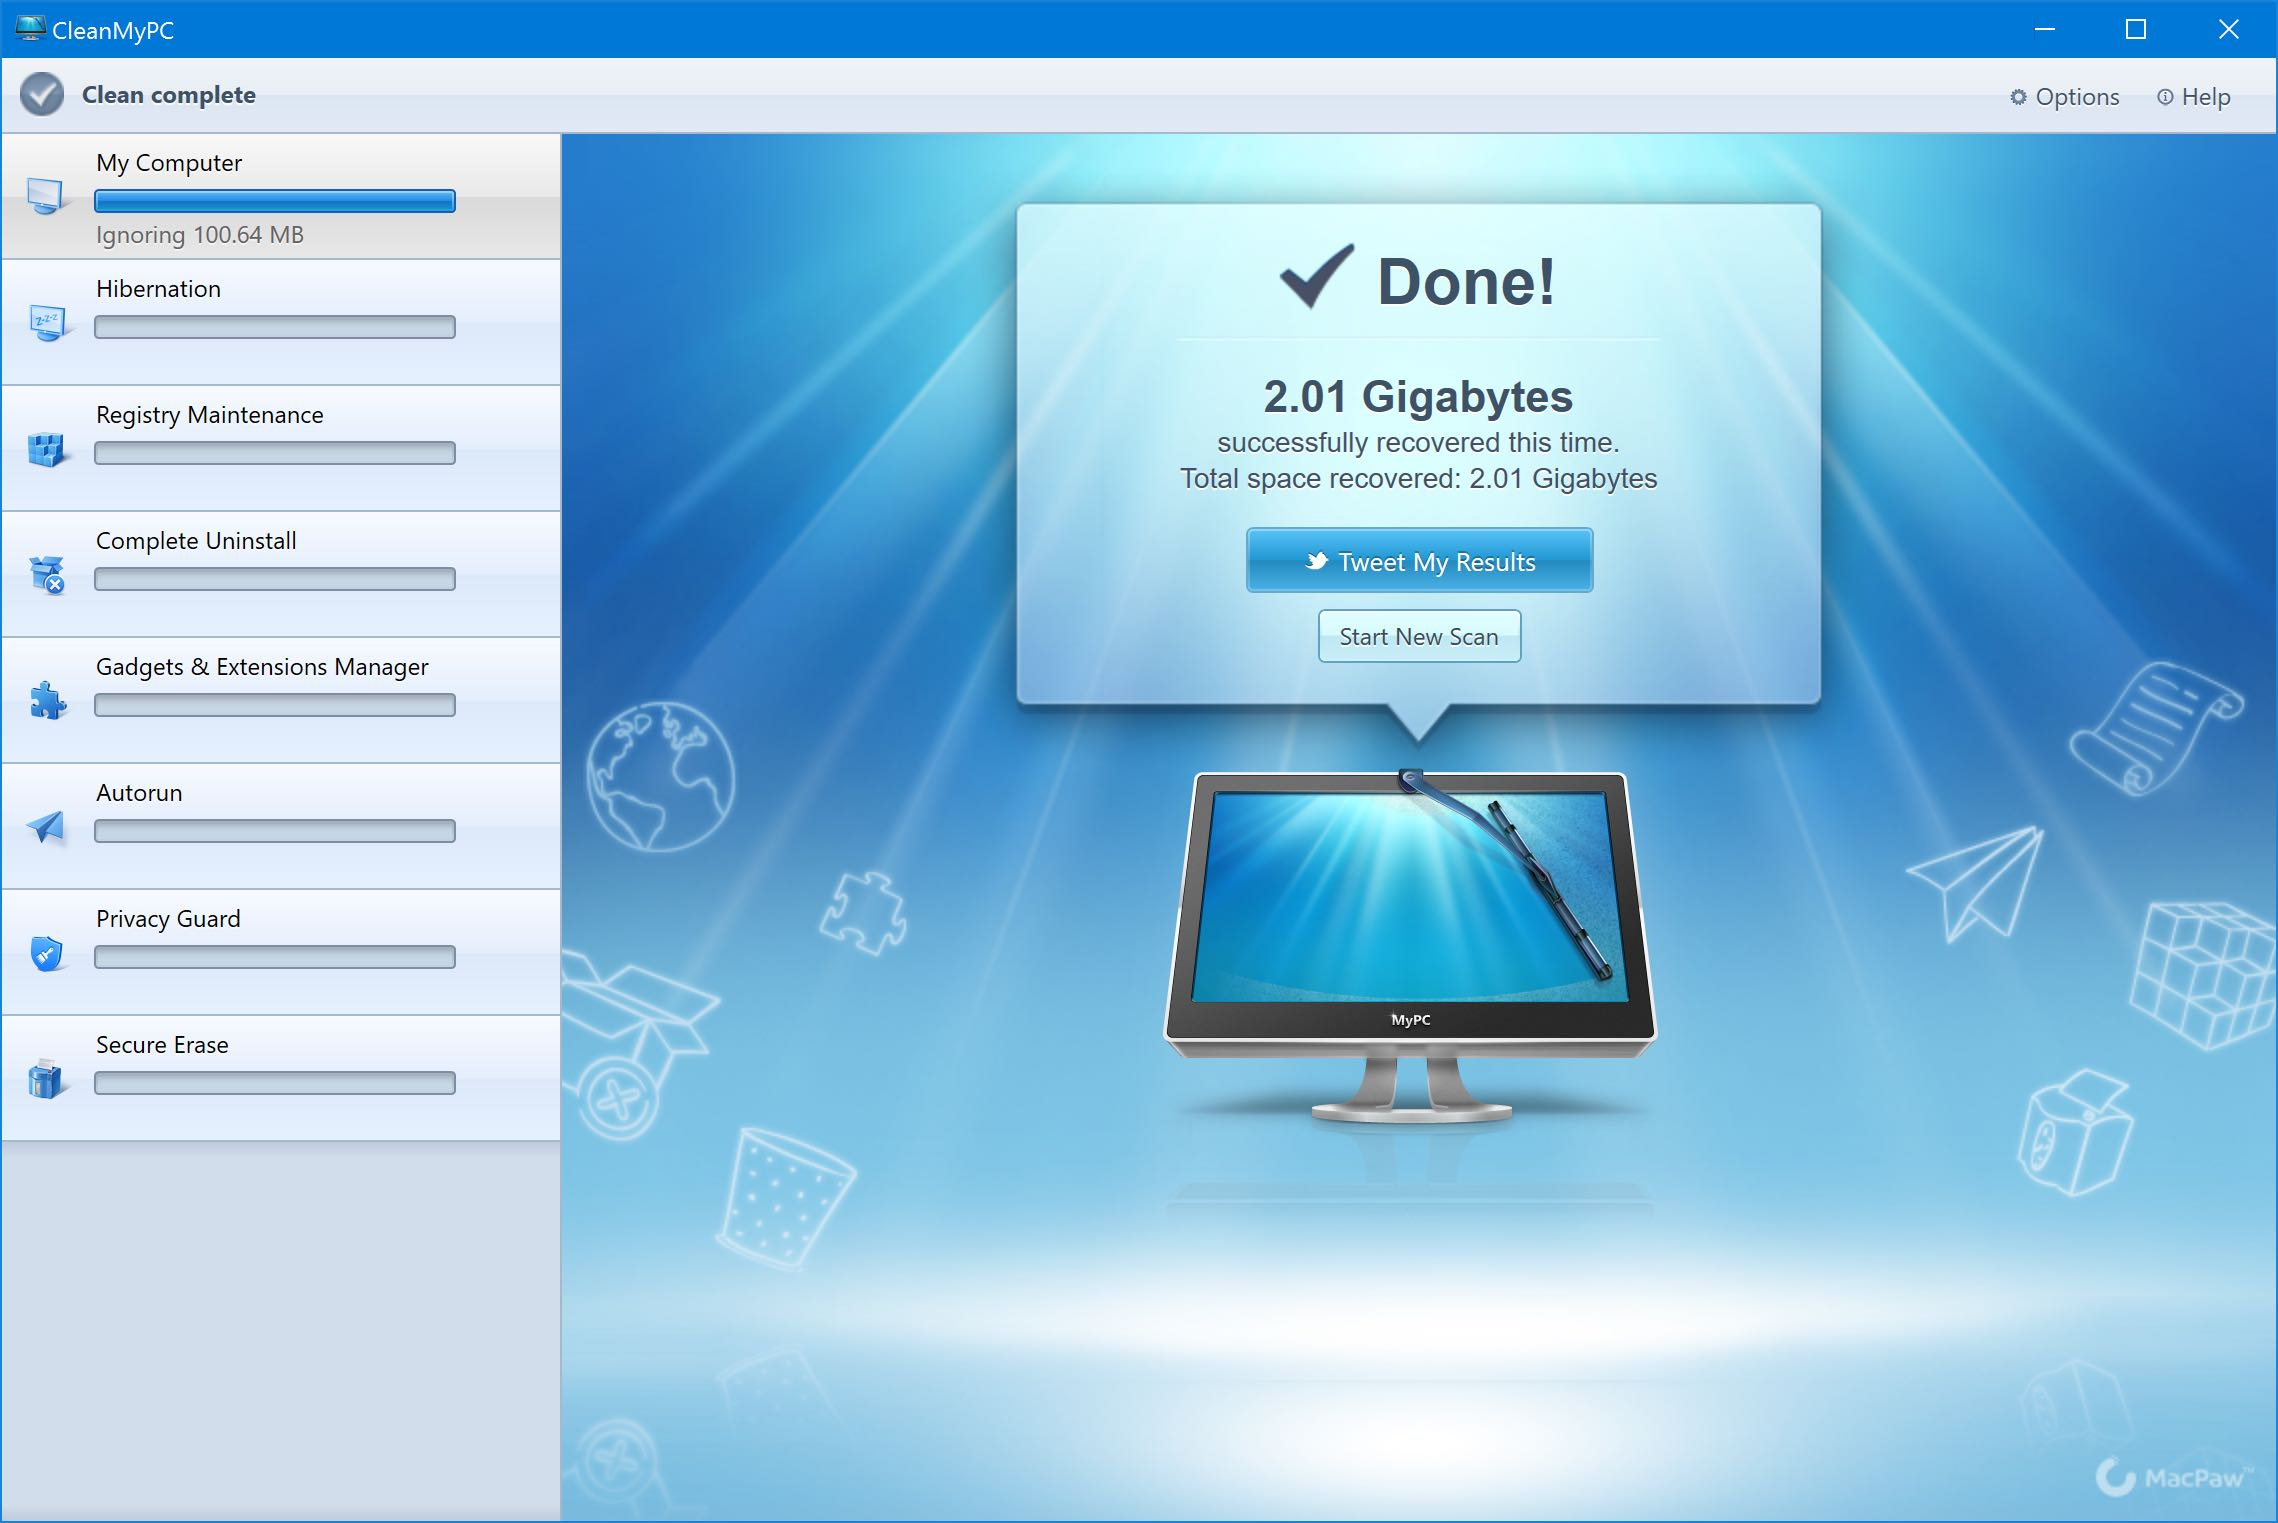 MacPaw CleanMyPC for Windows PC screesnhot 001